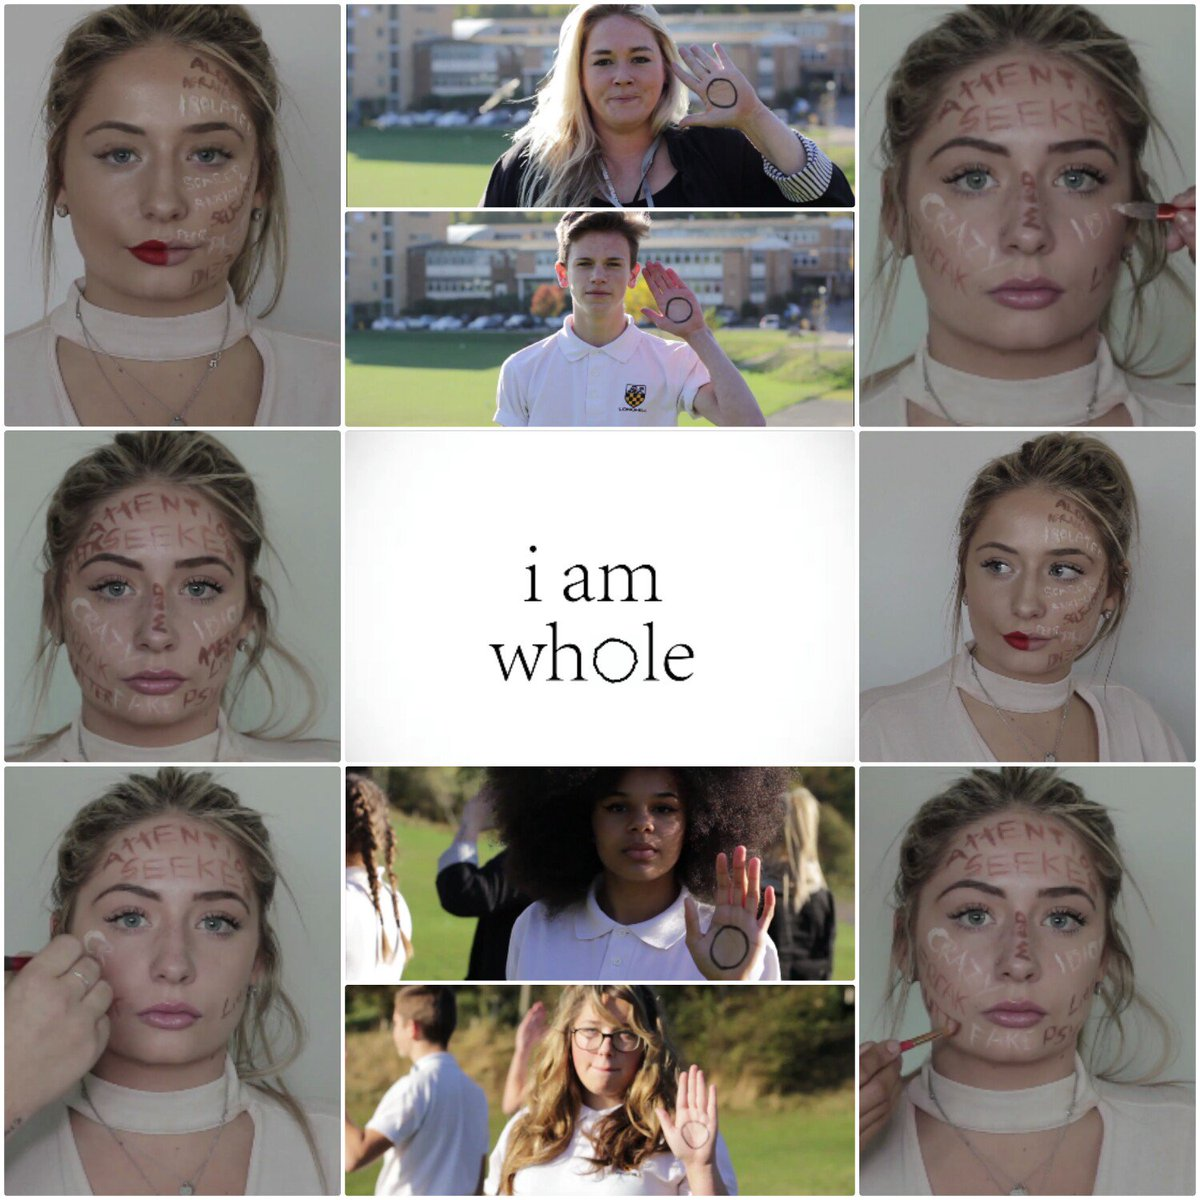 Deep in my heart  #imwhole  Made me think about everything again   https:// youtu.be/FUWPXGLJVRQ  &nbsp;   ft @imSaffronBarker <br>http://pic.twitter.com/VrQO4sB0iP